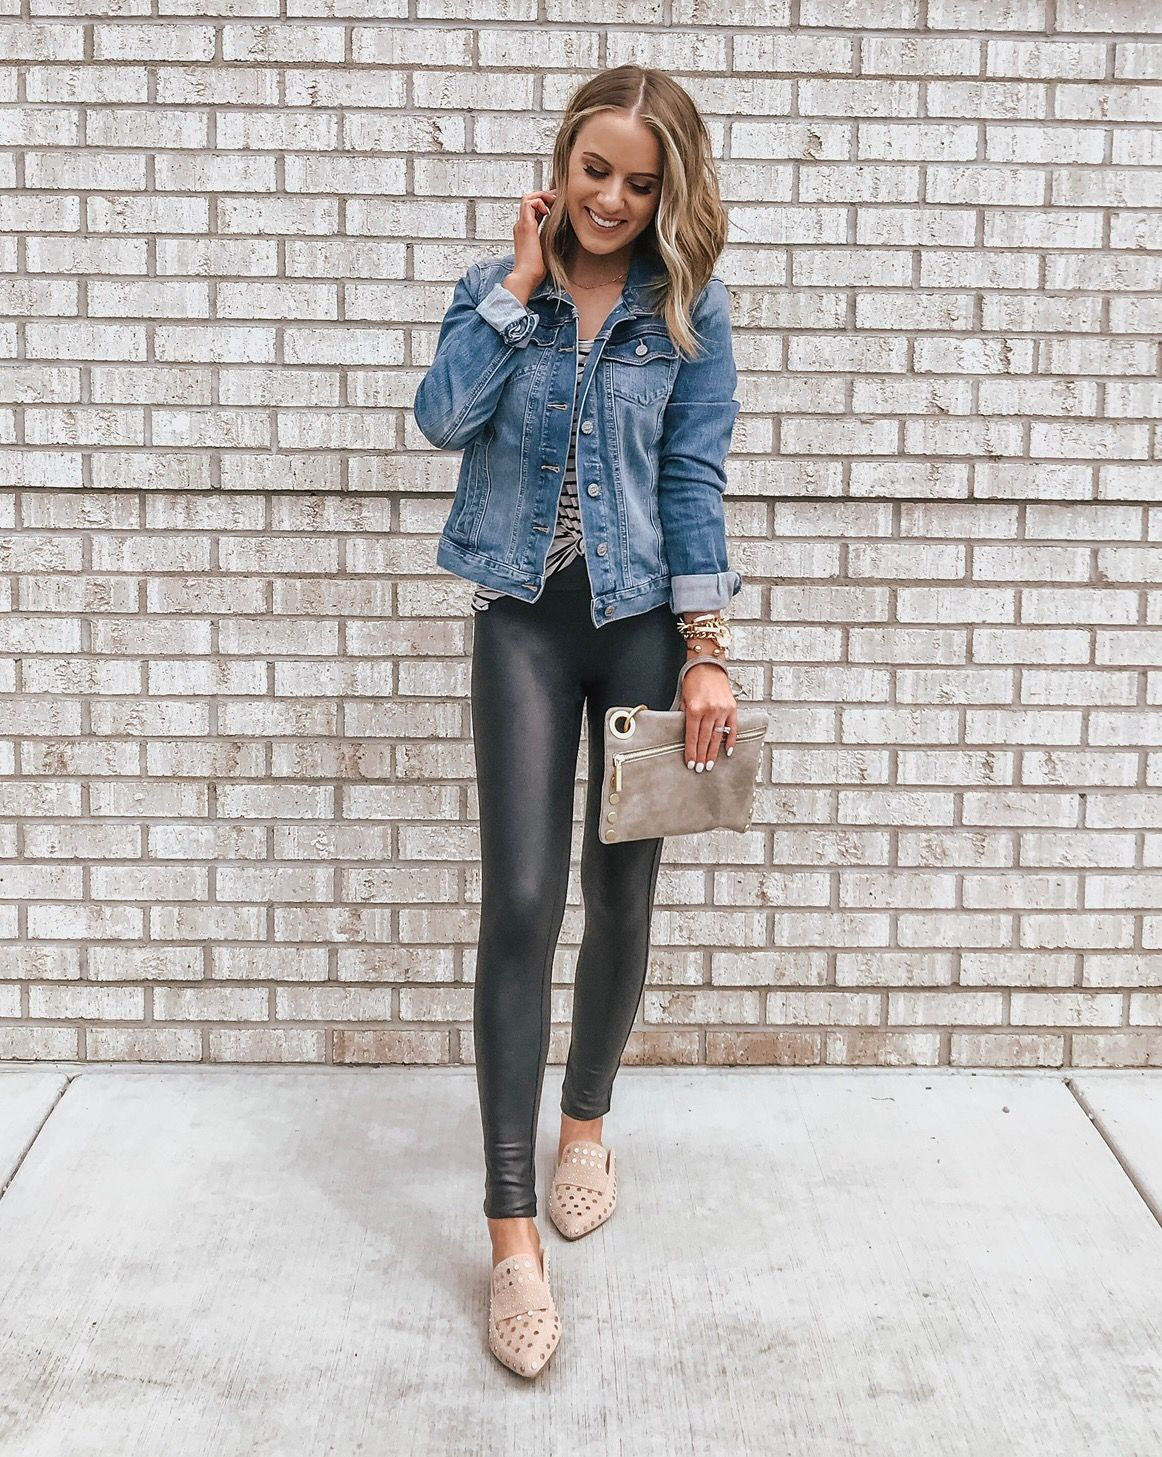 5281cd4fb5481c Love these faux leather leggings with the studded mules and denim jacket!